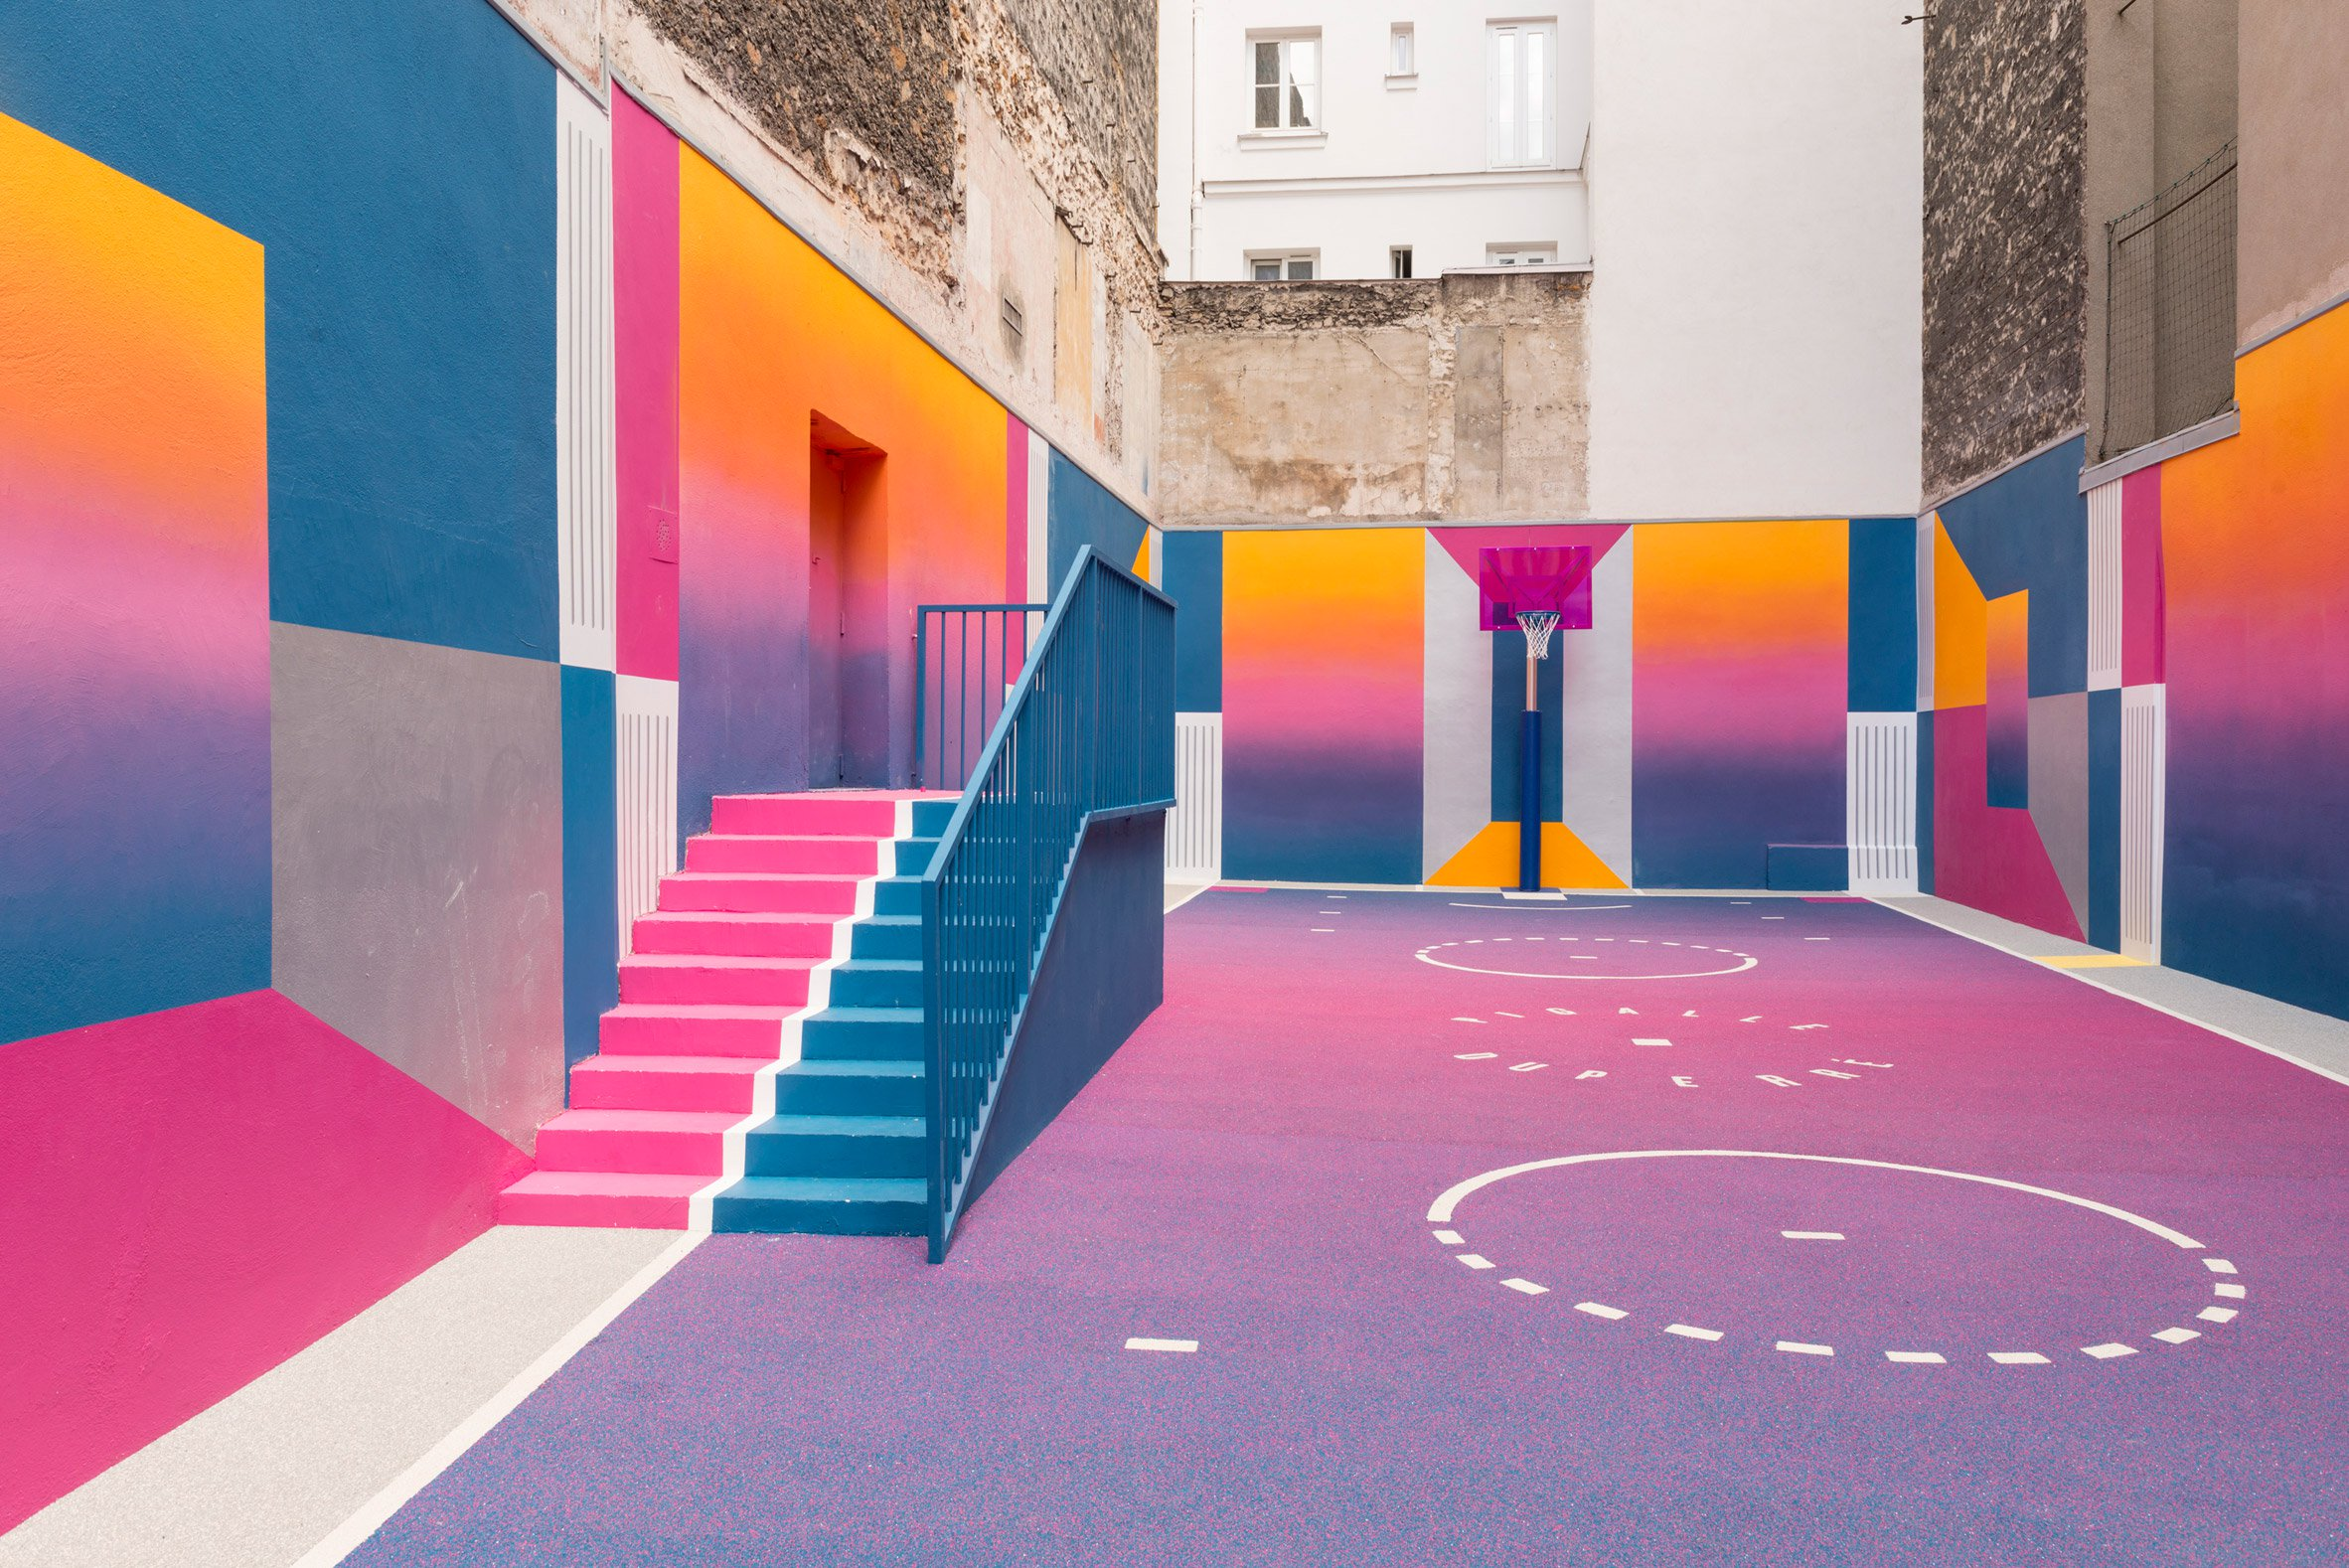 basket-court-pigalle-studio-architecture-public-leisure-paris-france-_dezeen_2364_col_5.jpg